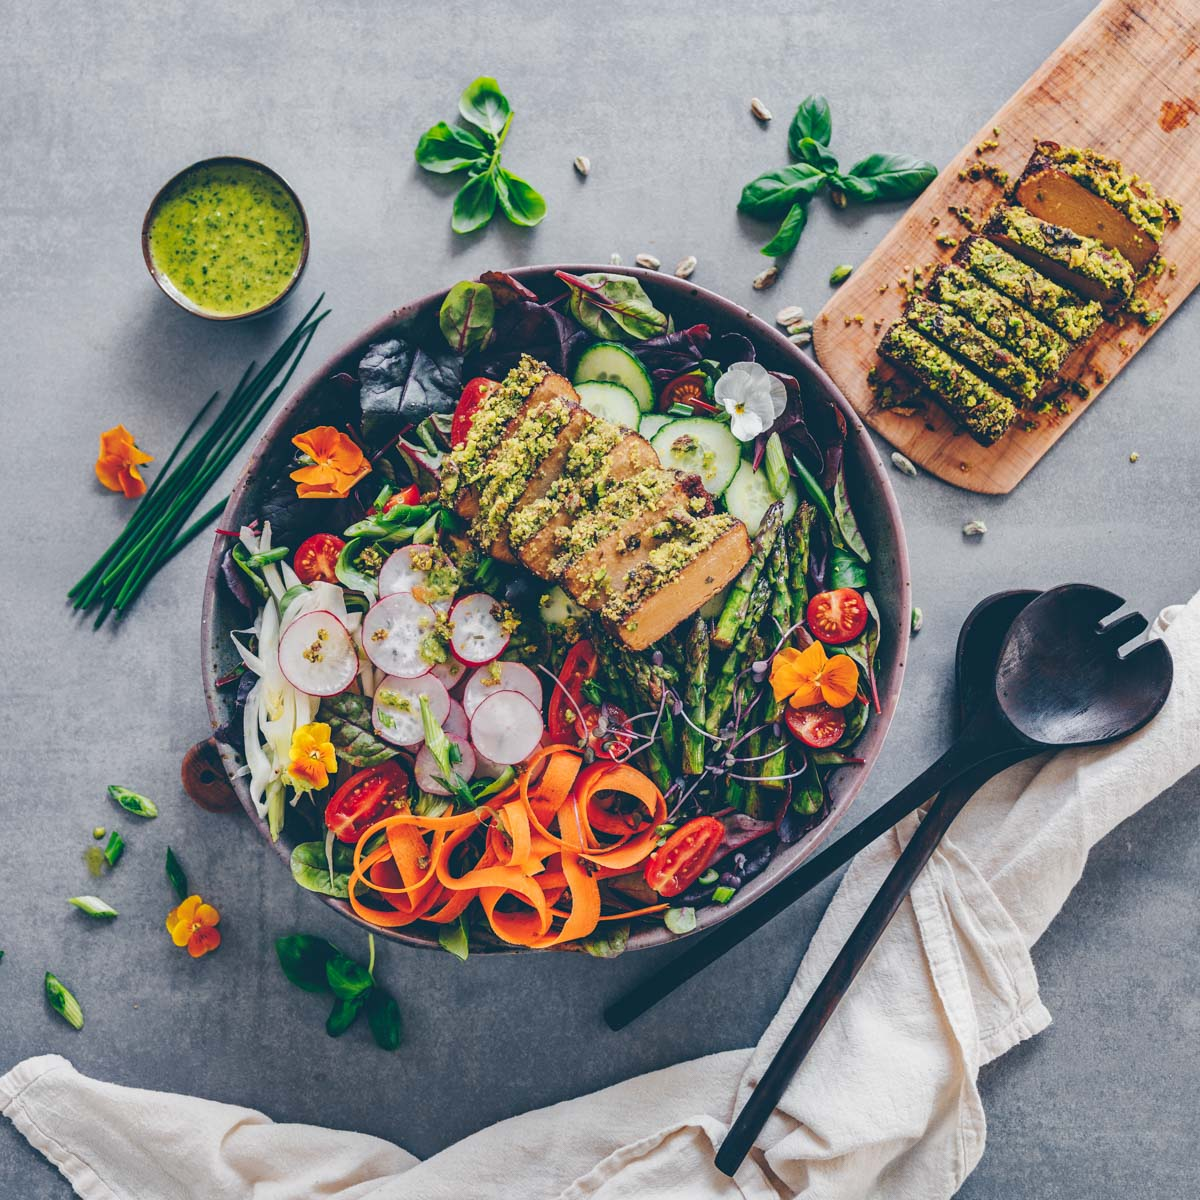 Spring salad and tofu with pistachio crust